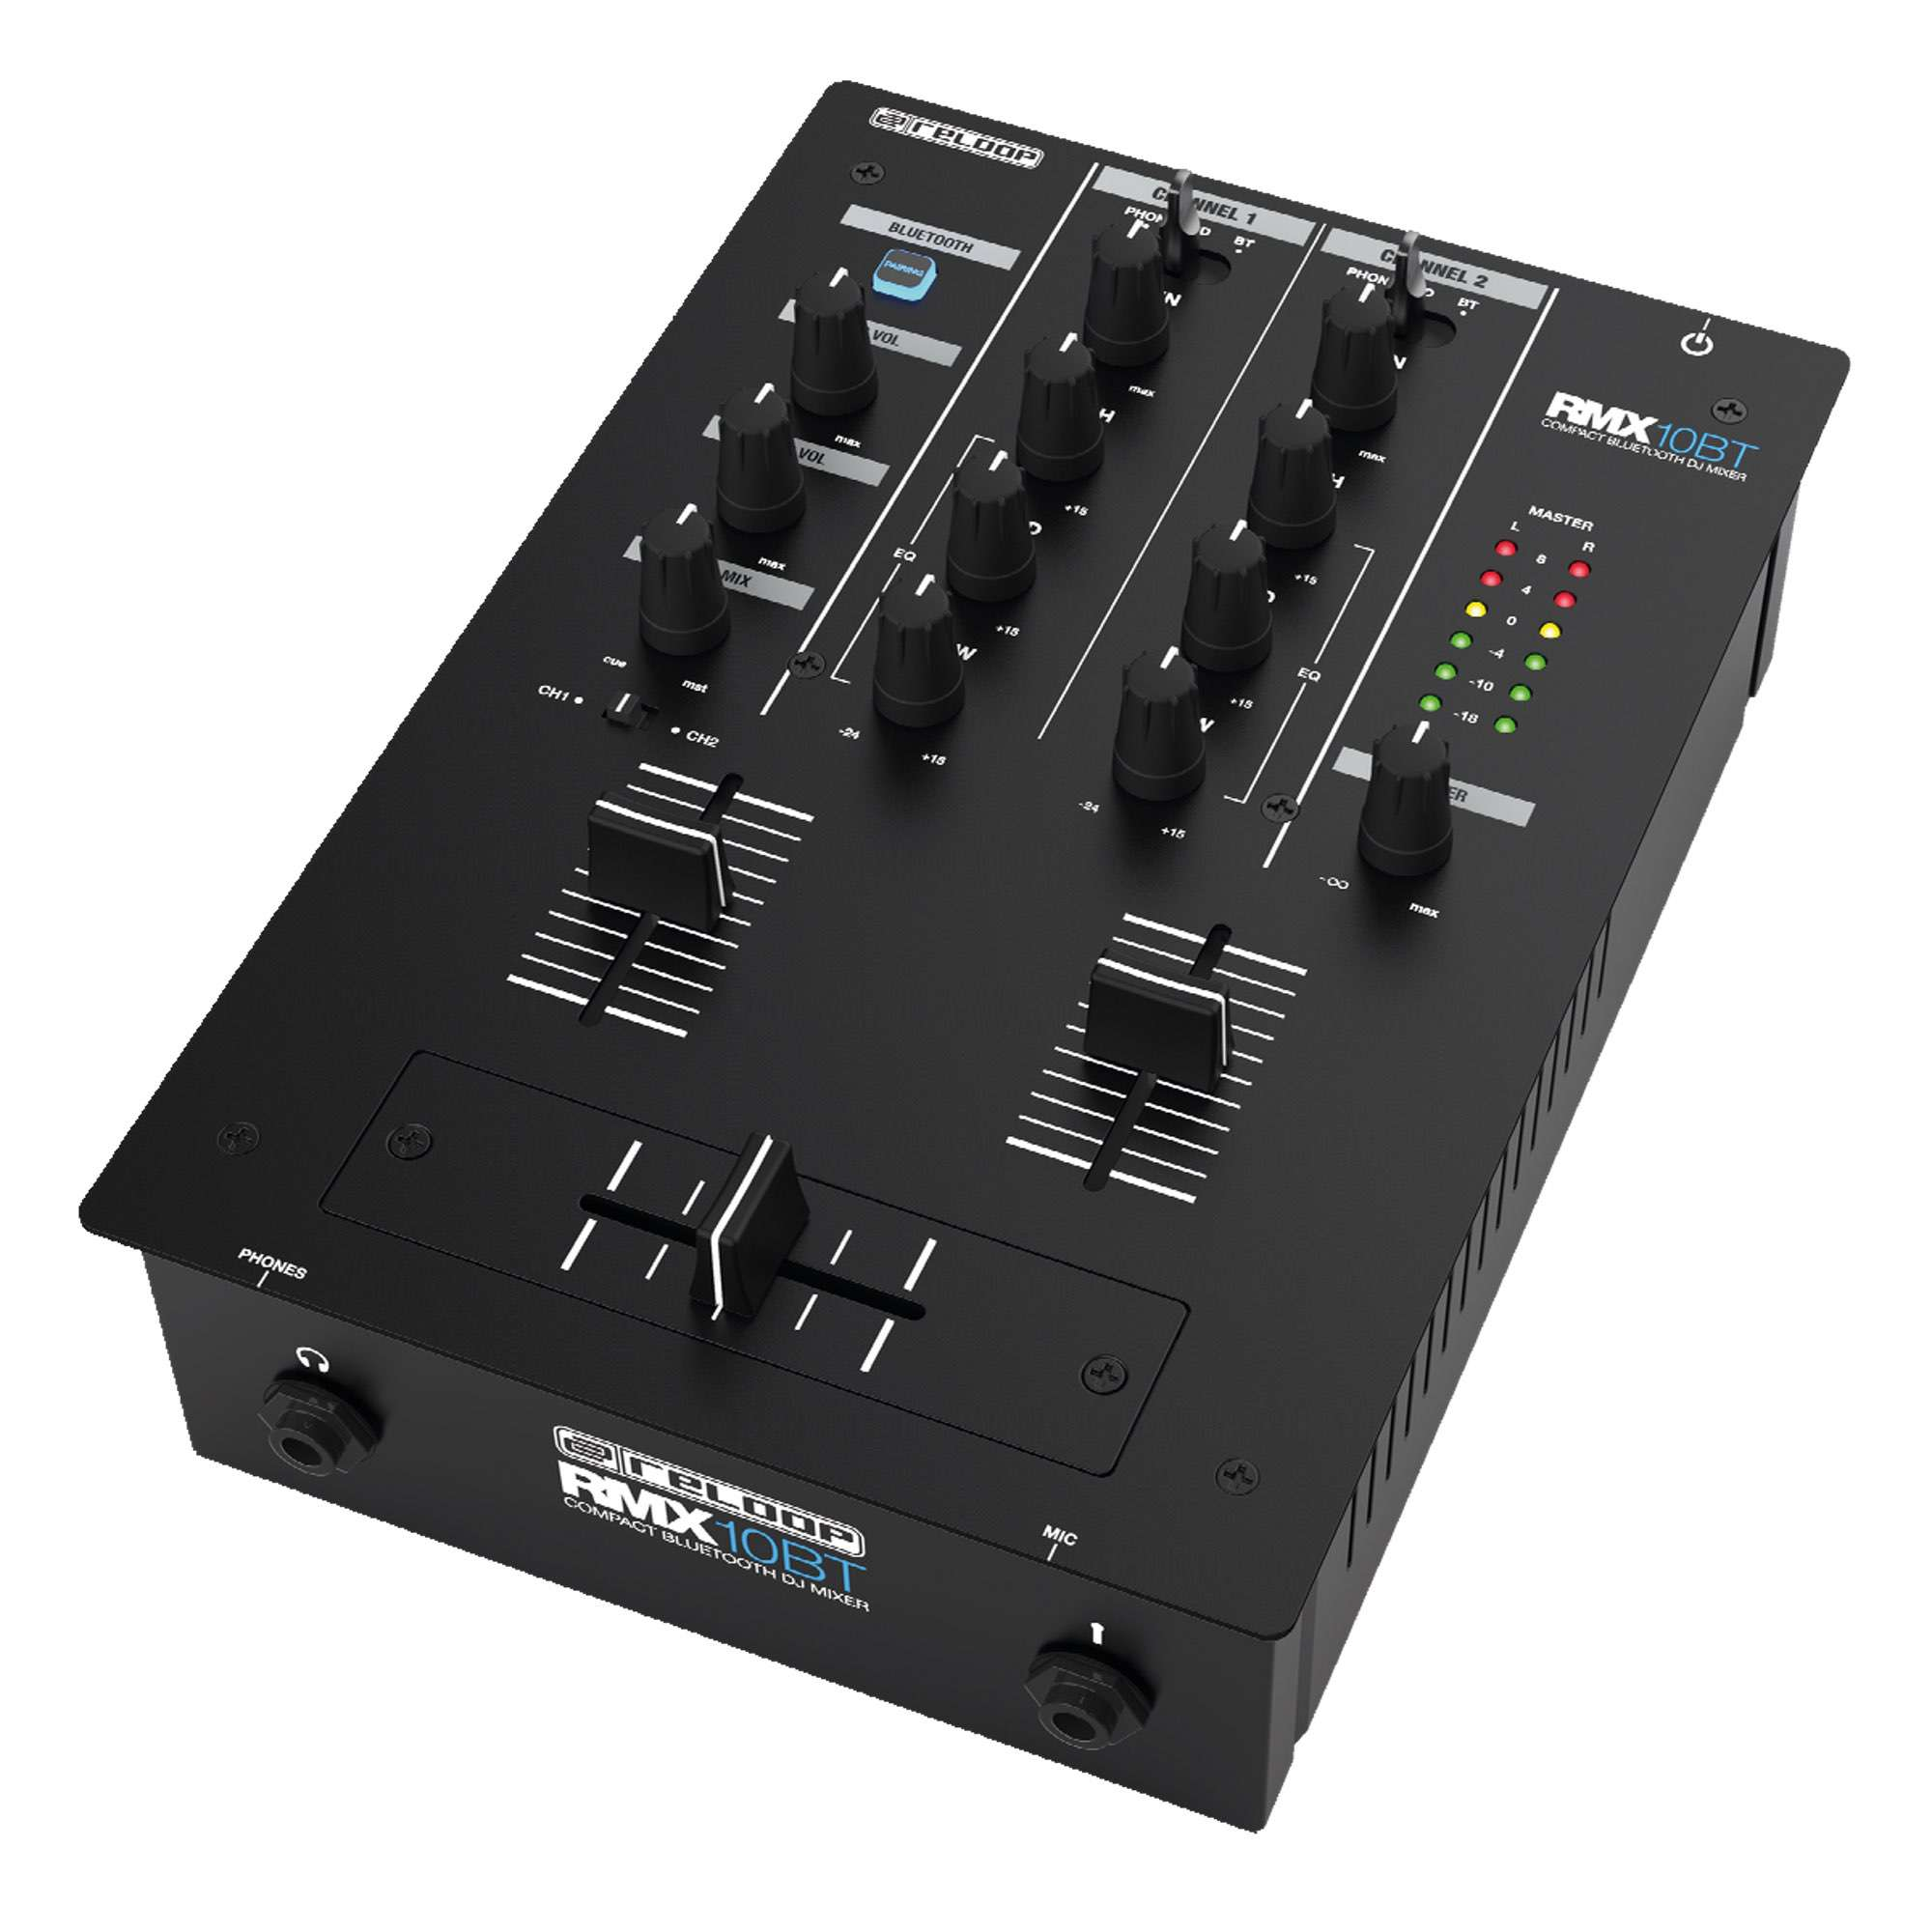 Reloop RMX-10 BT Bluetooth Mixer (1)